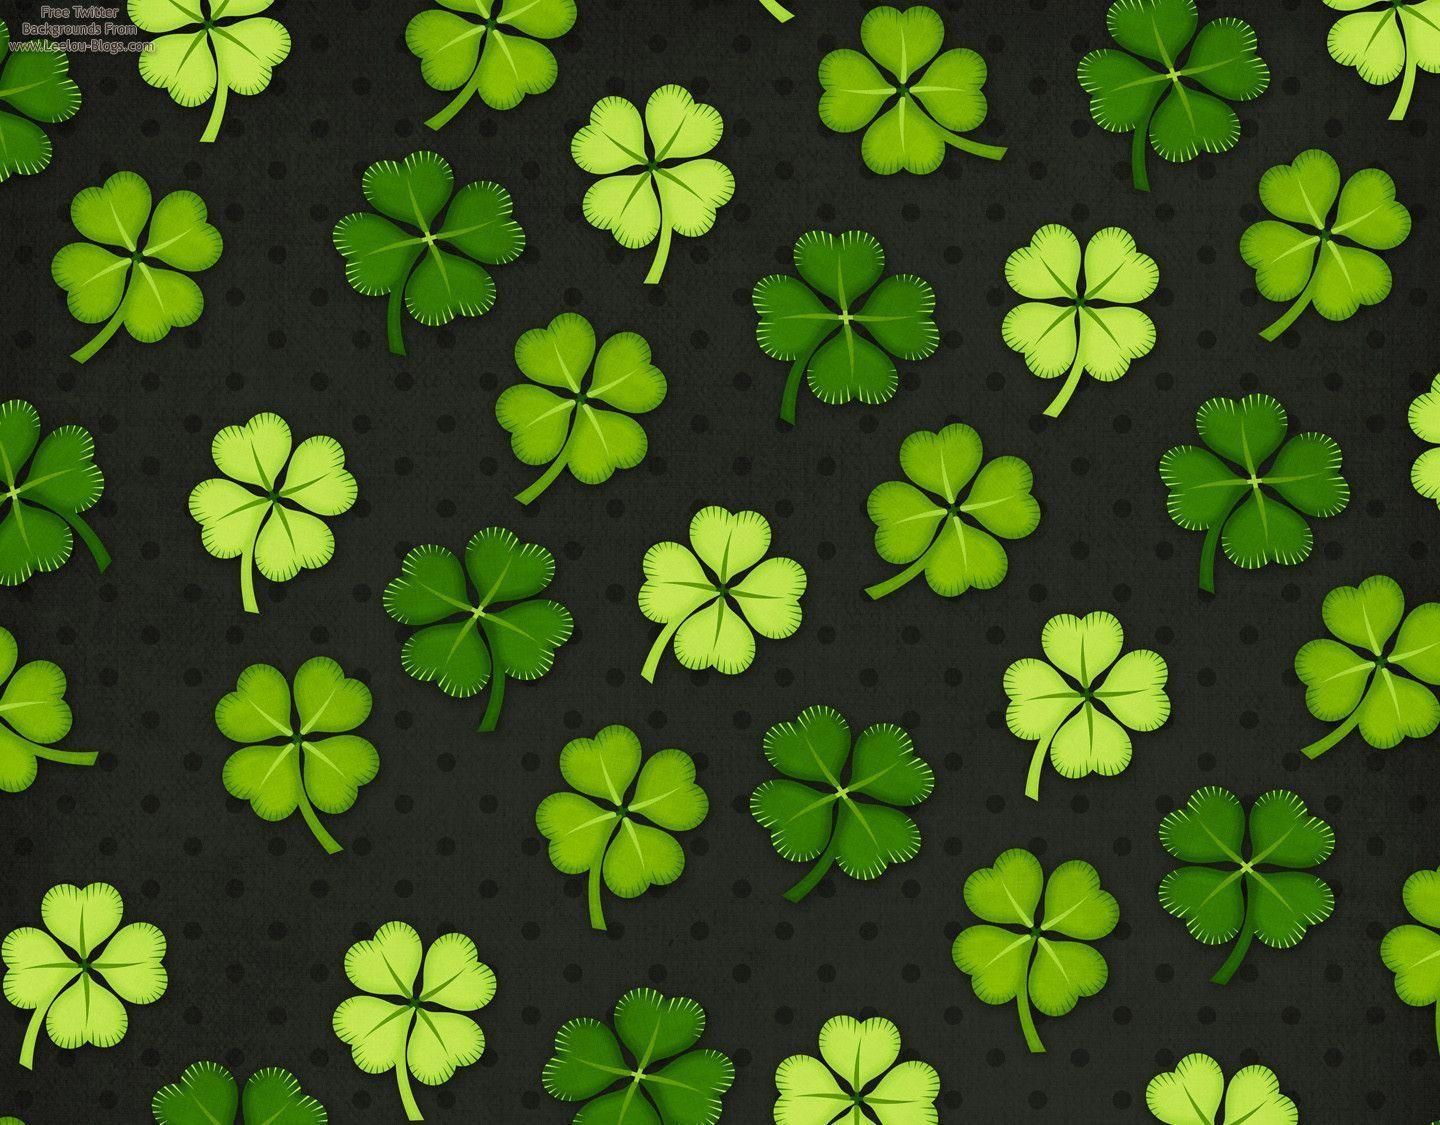 patricks day shamrock background - photo #17